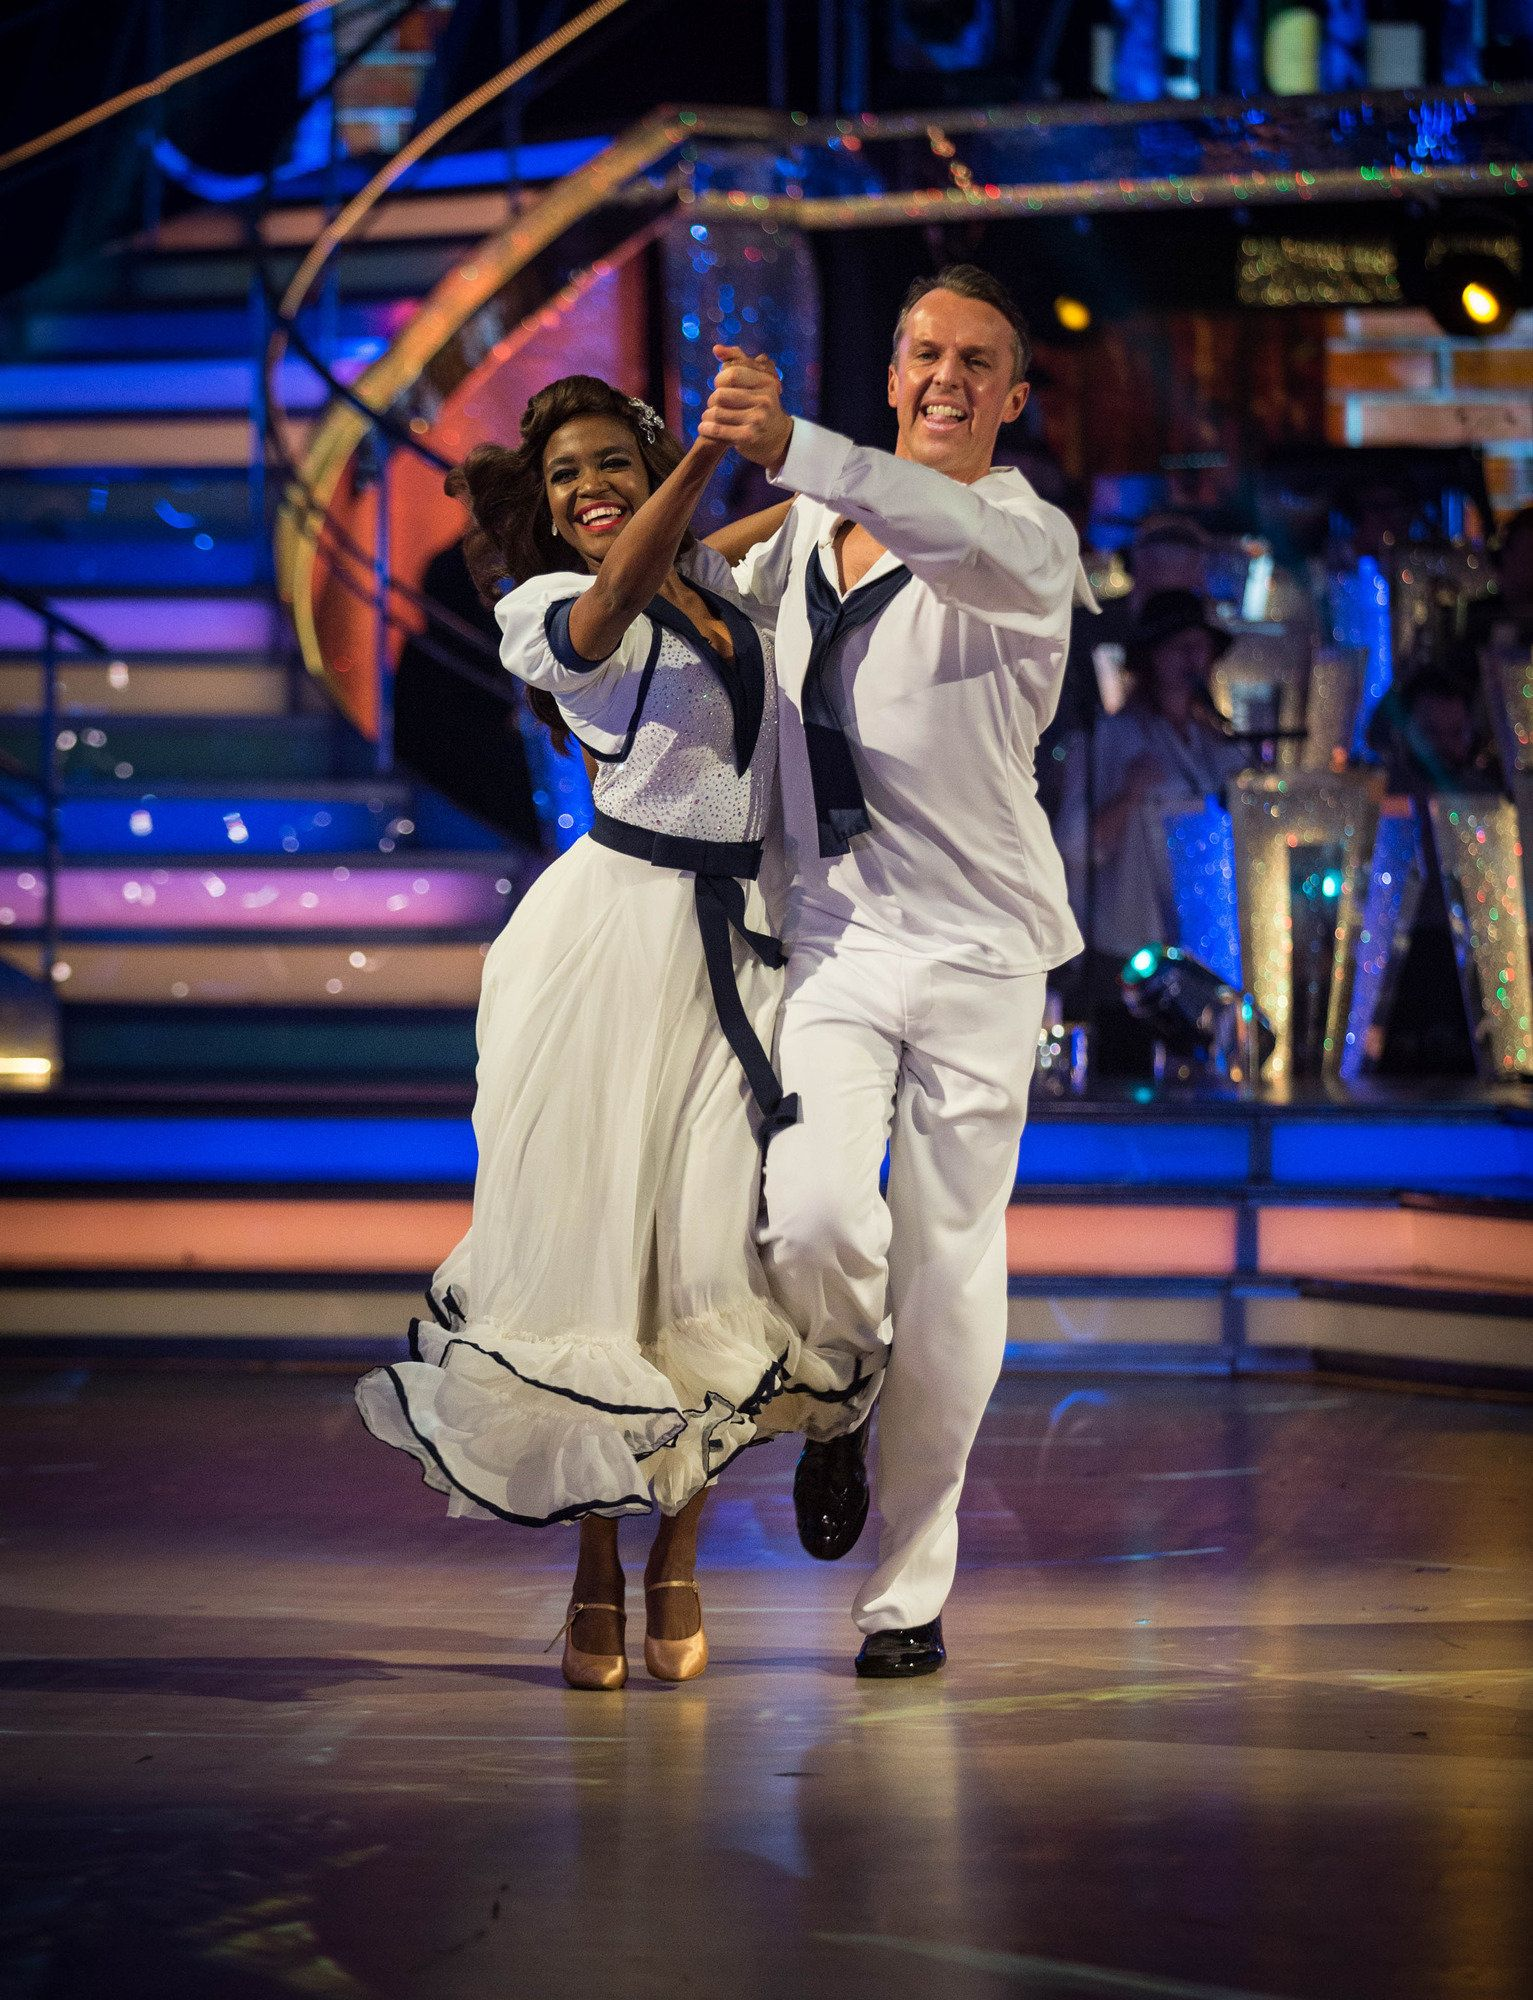 Graeme Swann Leaves 'Strictly' After Shock Dance-Off Against Ashley